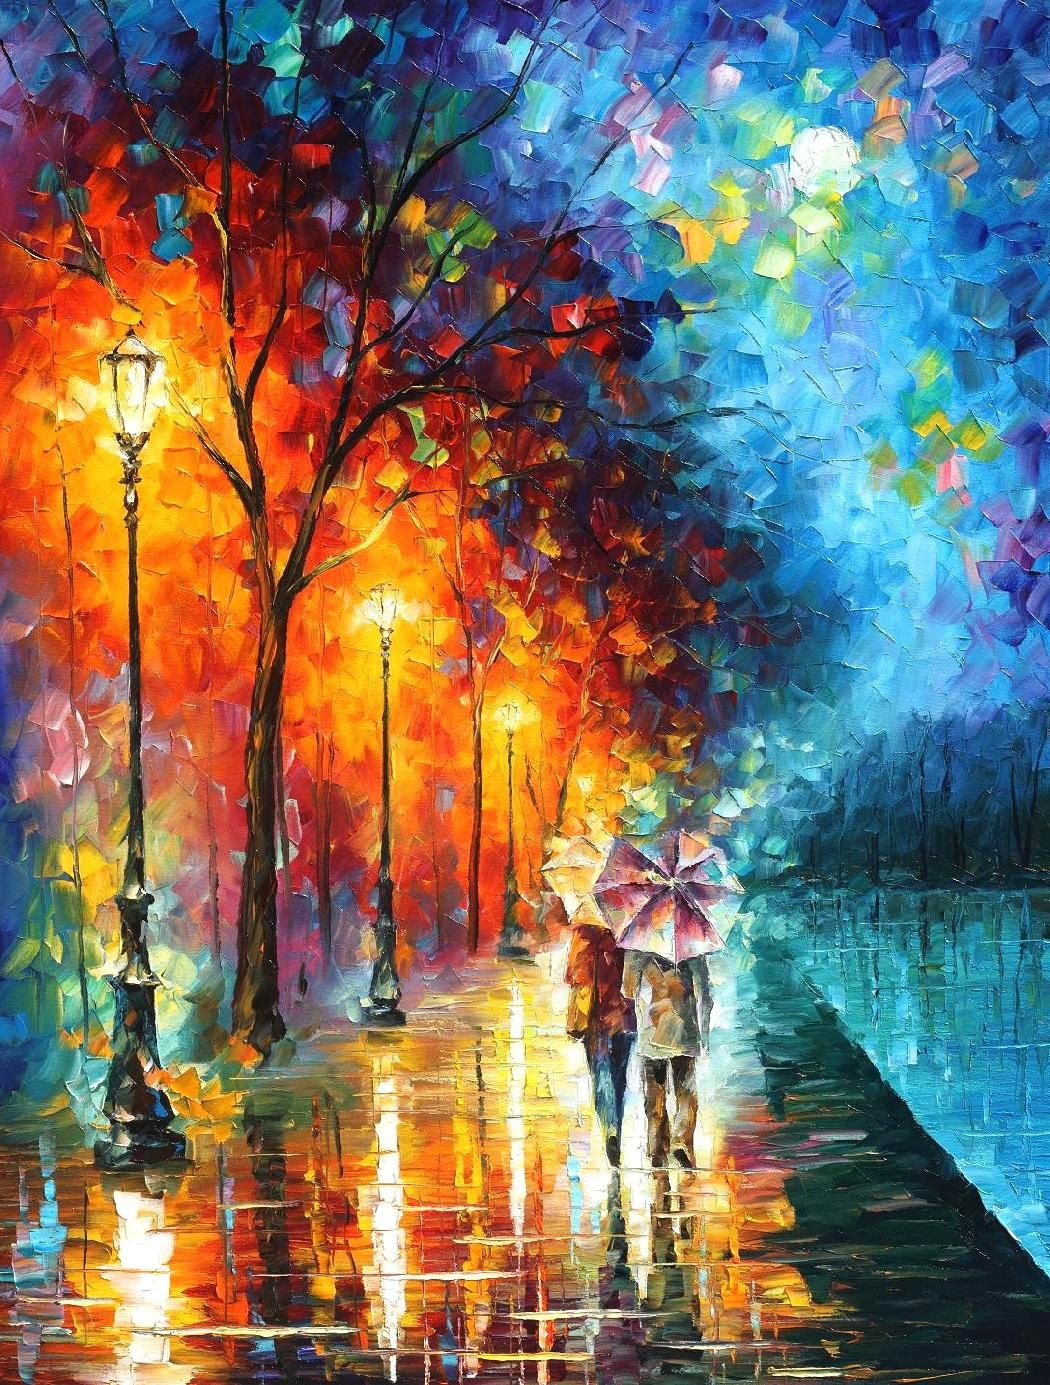 """Original Recreation Oil Painting on Canvas This is the best possible quality of recreation made by Leonid Afremov in person.  Title: Love by the lake Size: 30"""" x 40"""" (75cm x 100cm) Condition: Excellent Brand new Gallery Estimated Value: $14,500 Type: Original Recreation Oil Painting on Can..."""